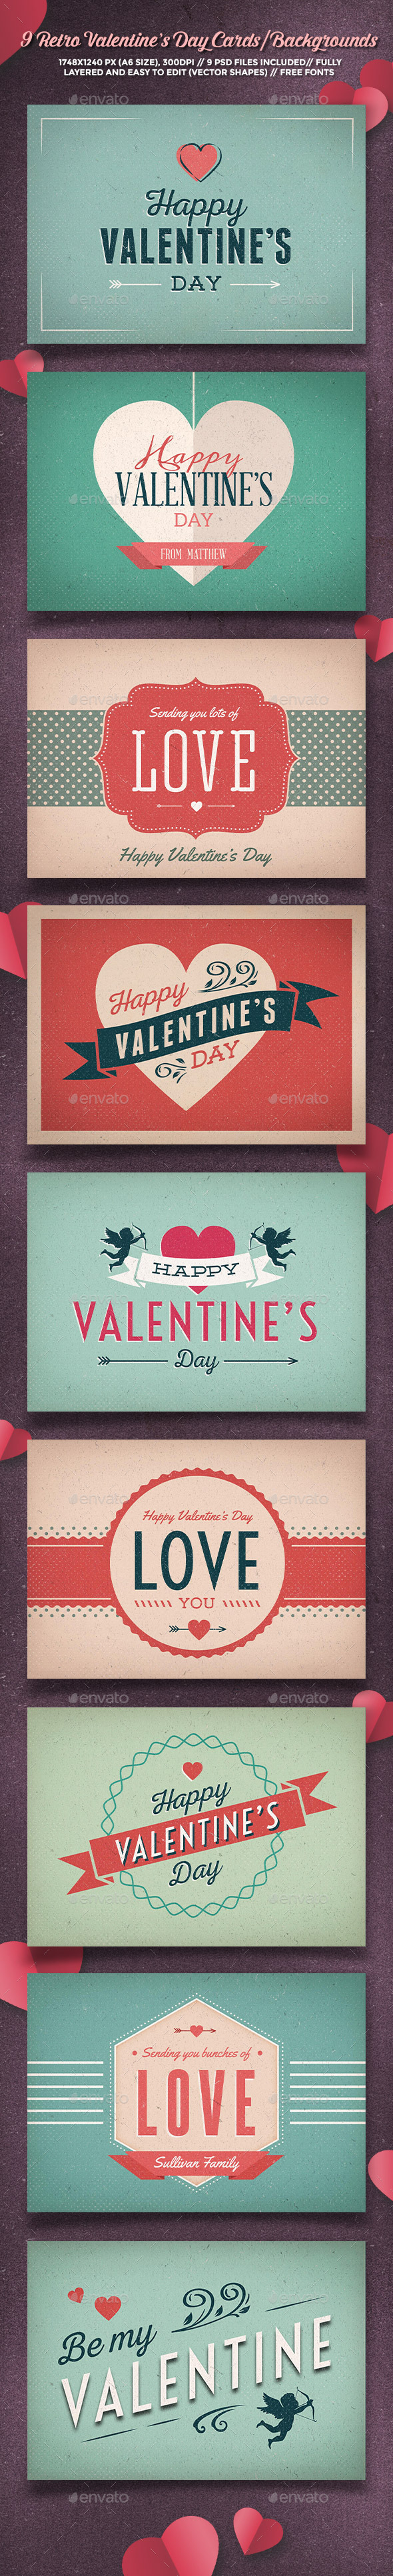 9 Retro Valentine's Day Cards Backgrounds